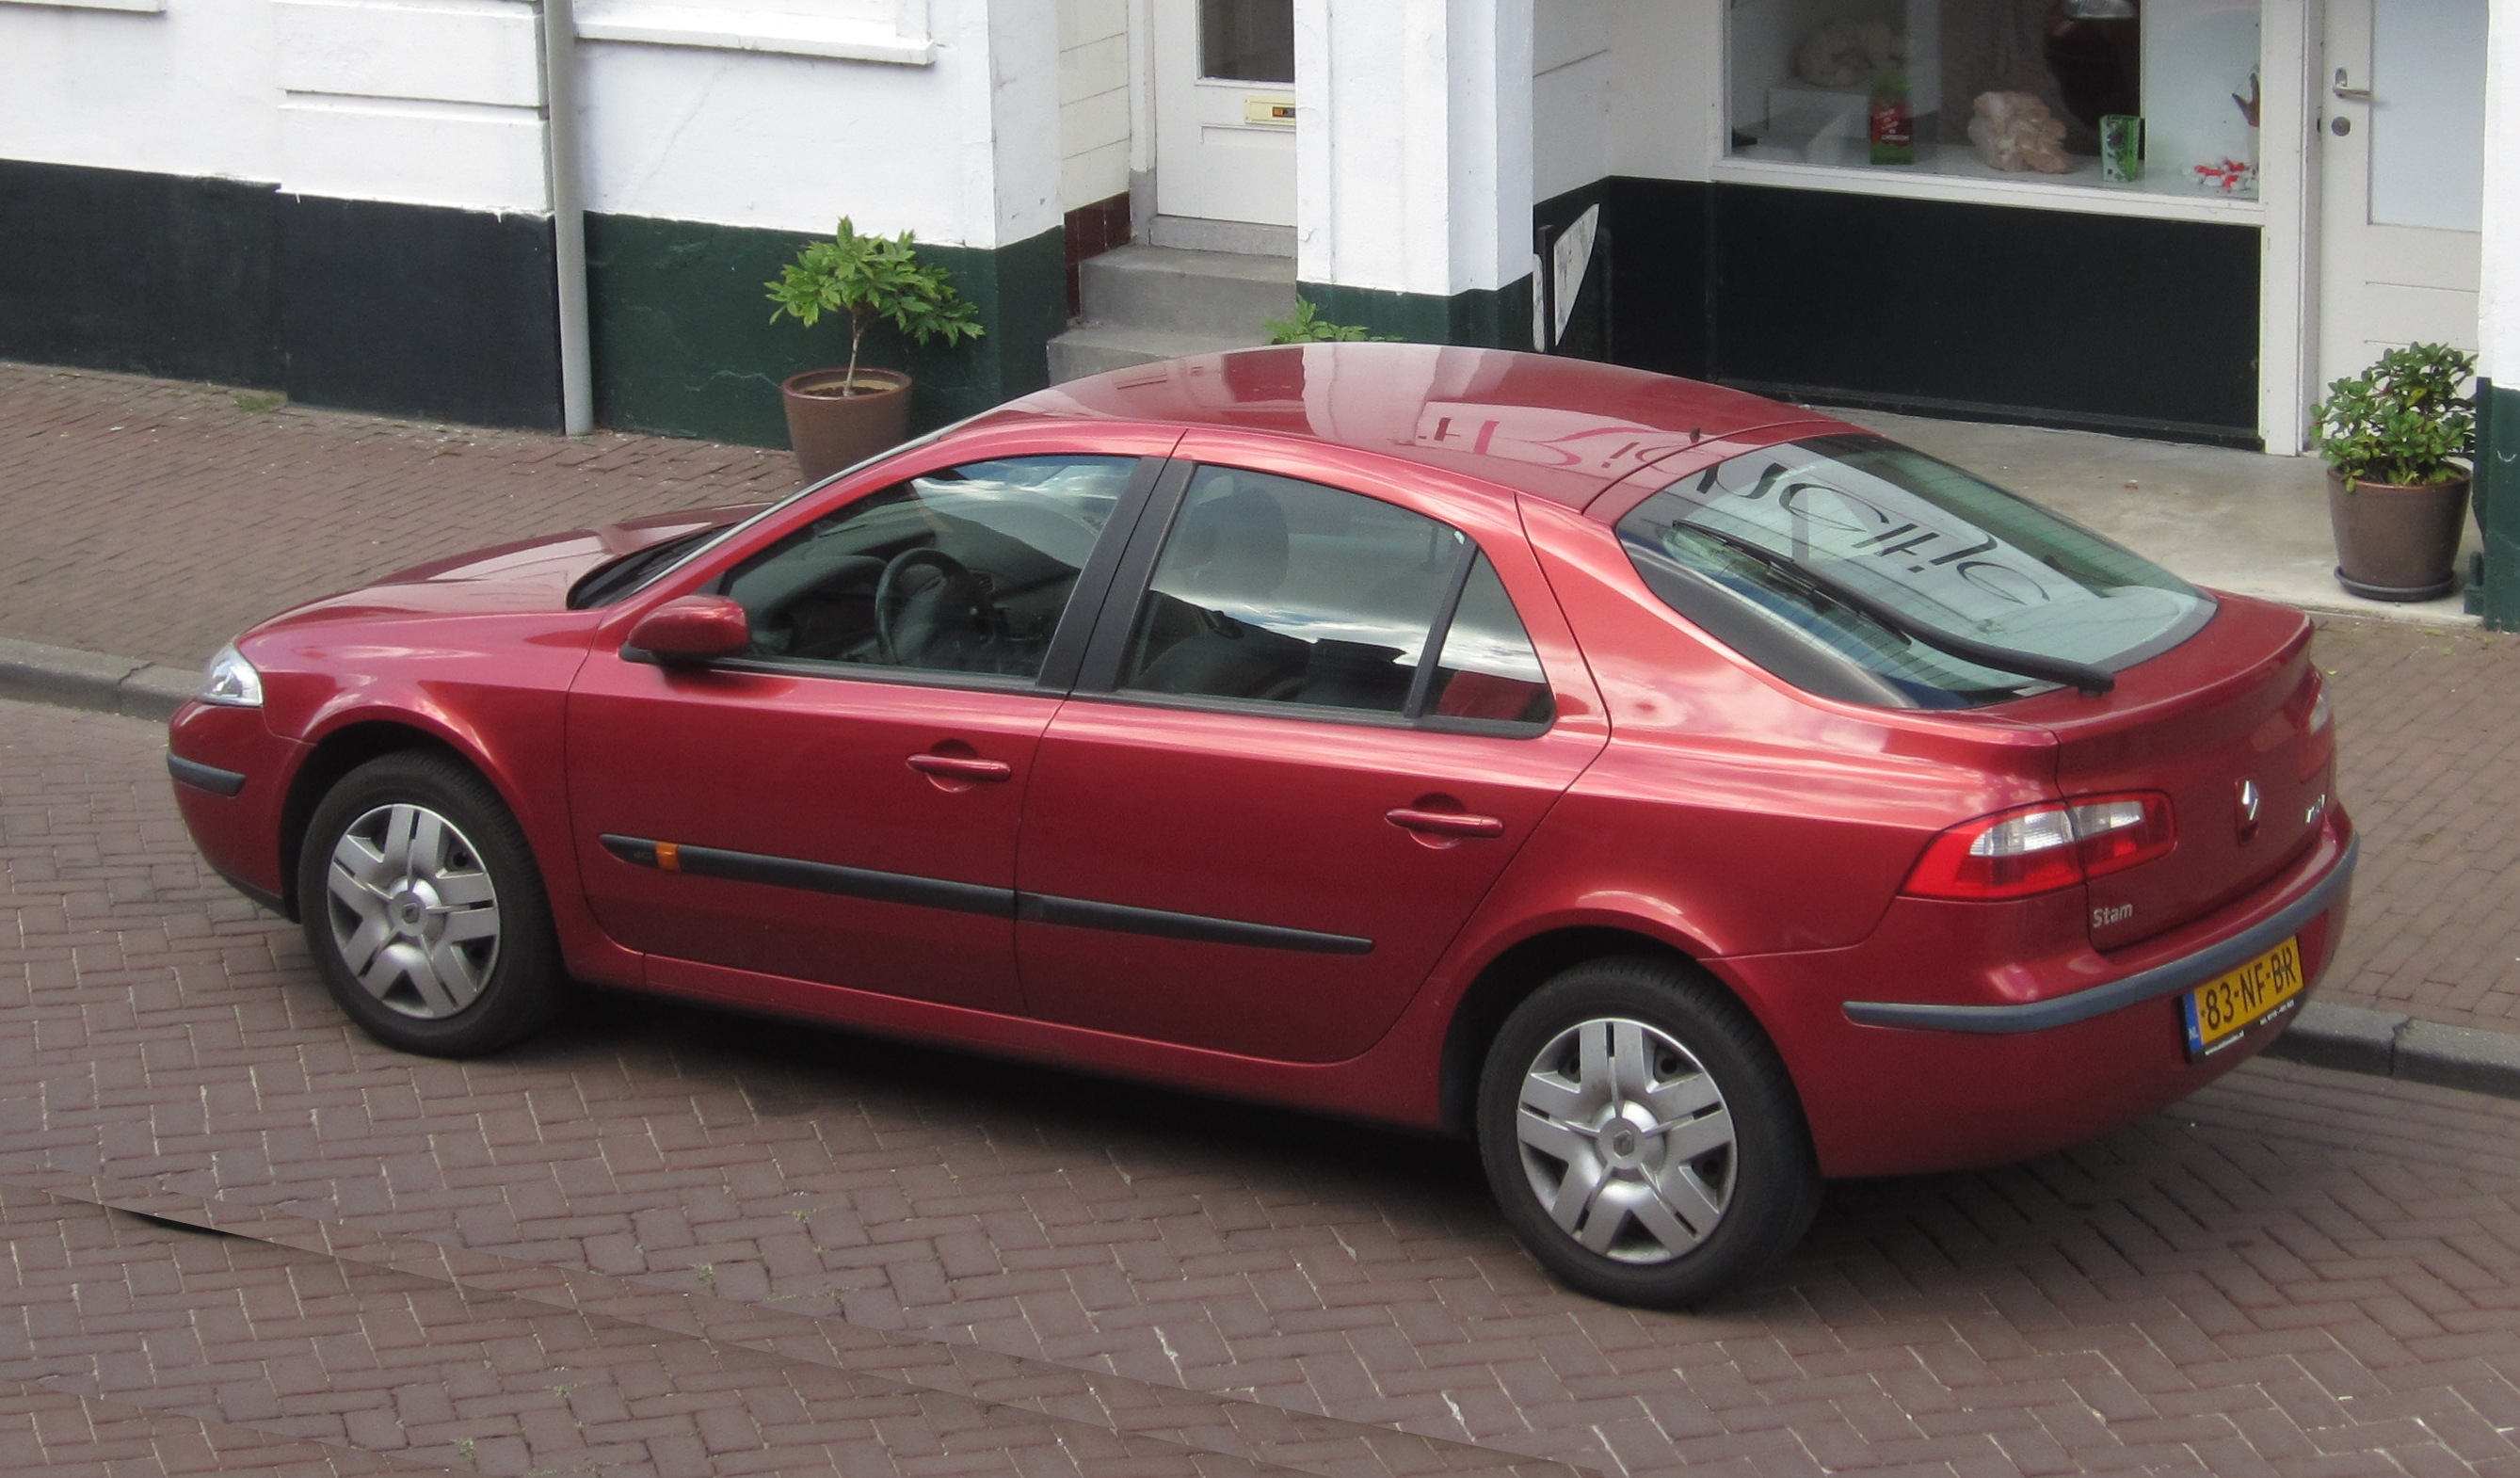 file renault laguna ii rear three quarters in aardenburg jpg wikimedia commons. Black Bedroom Furniture Sets. Home Design Ideas